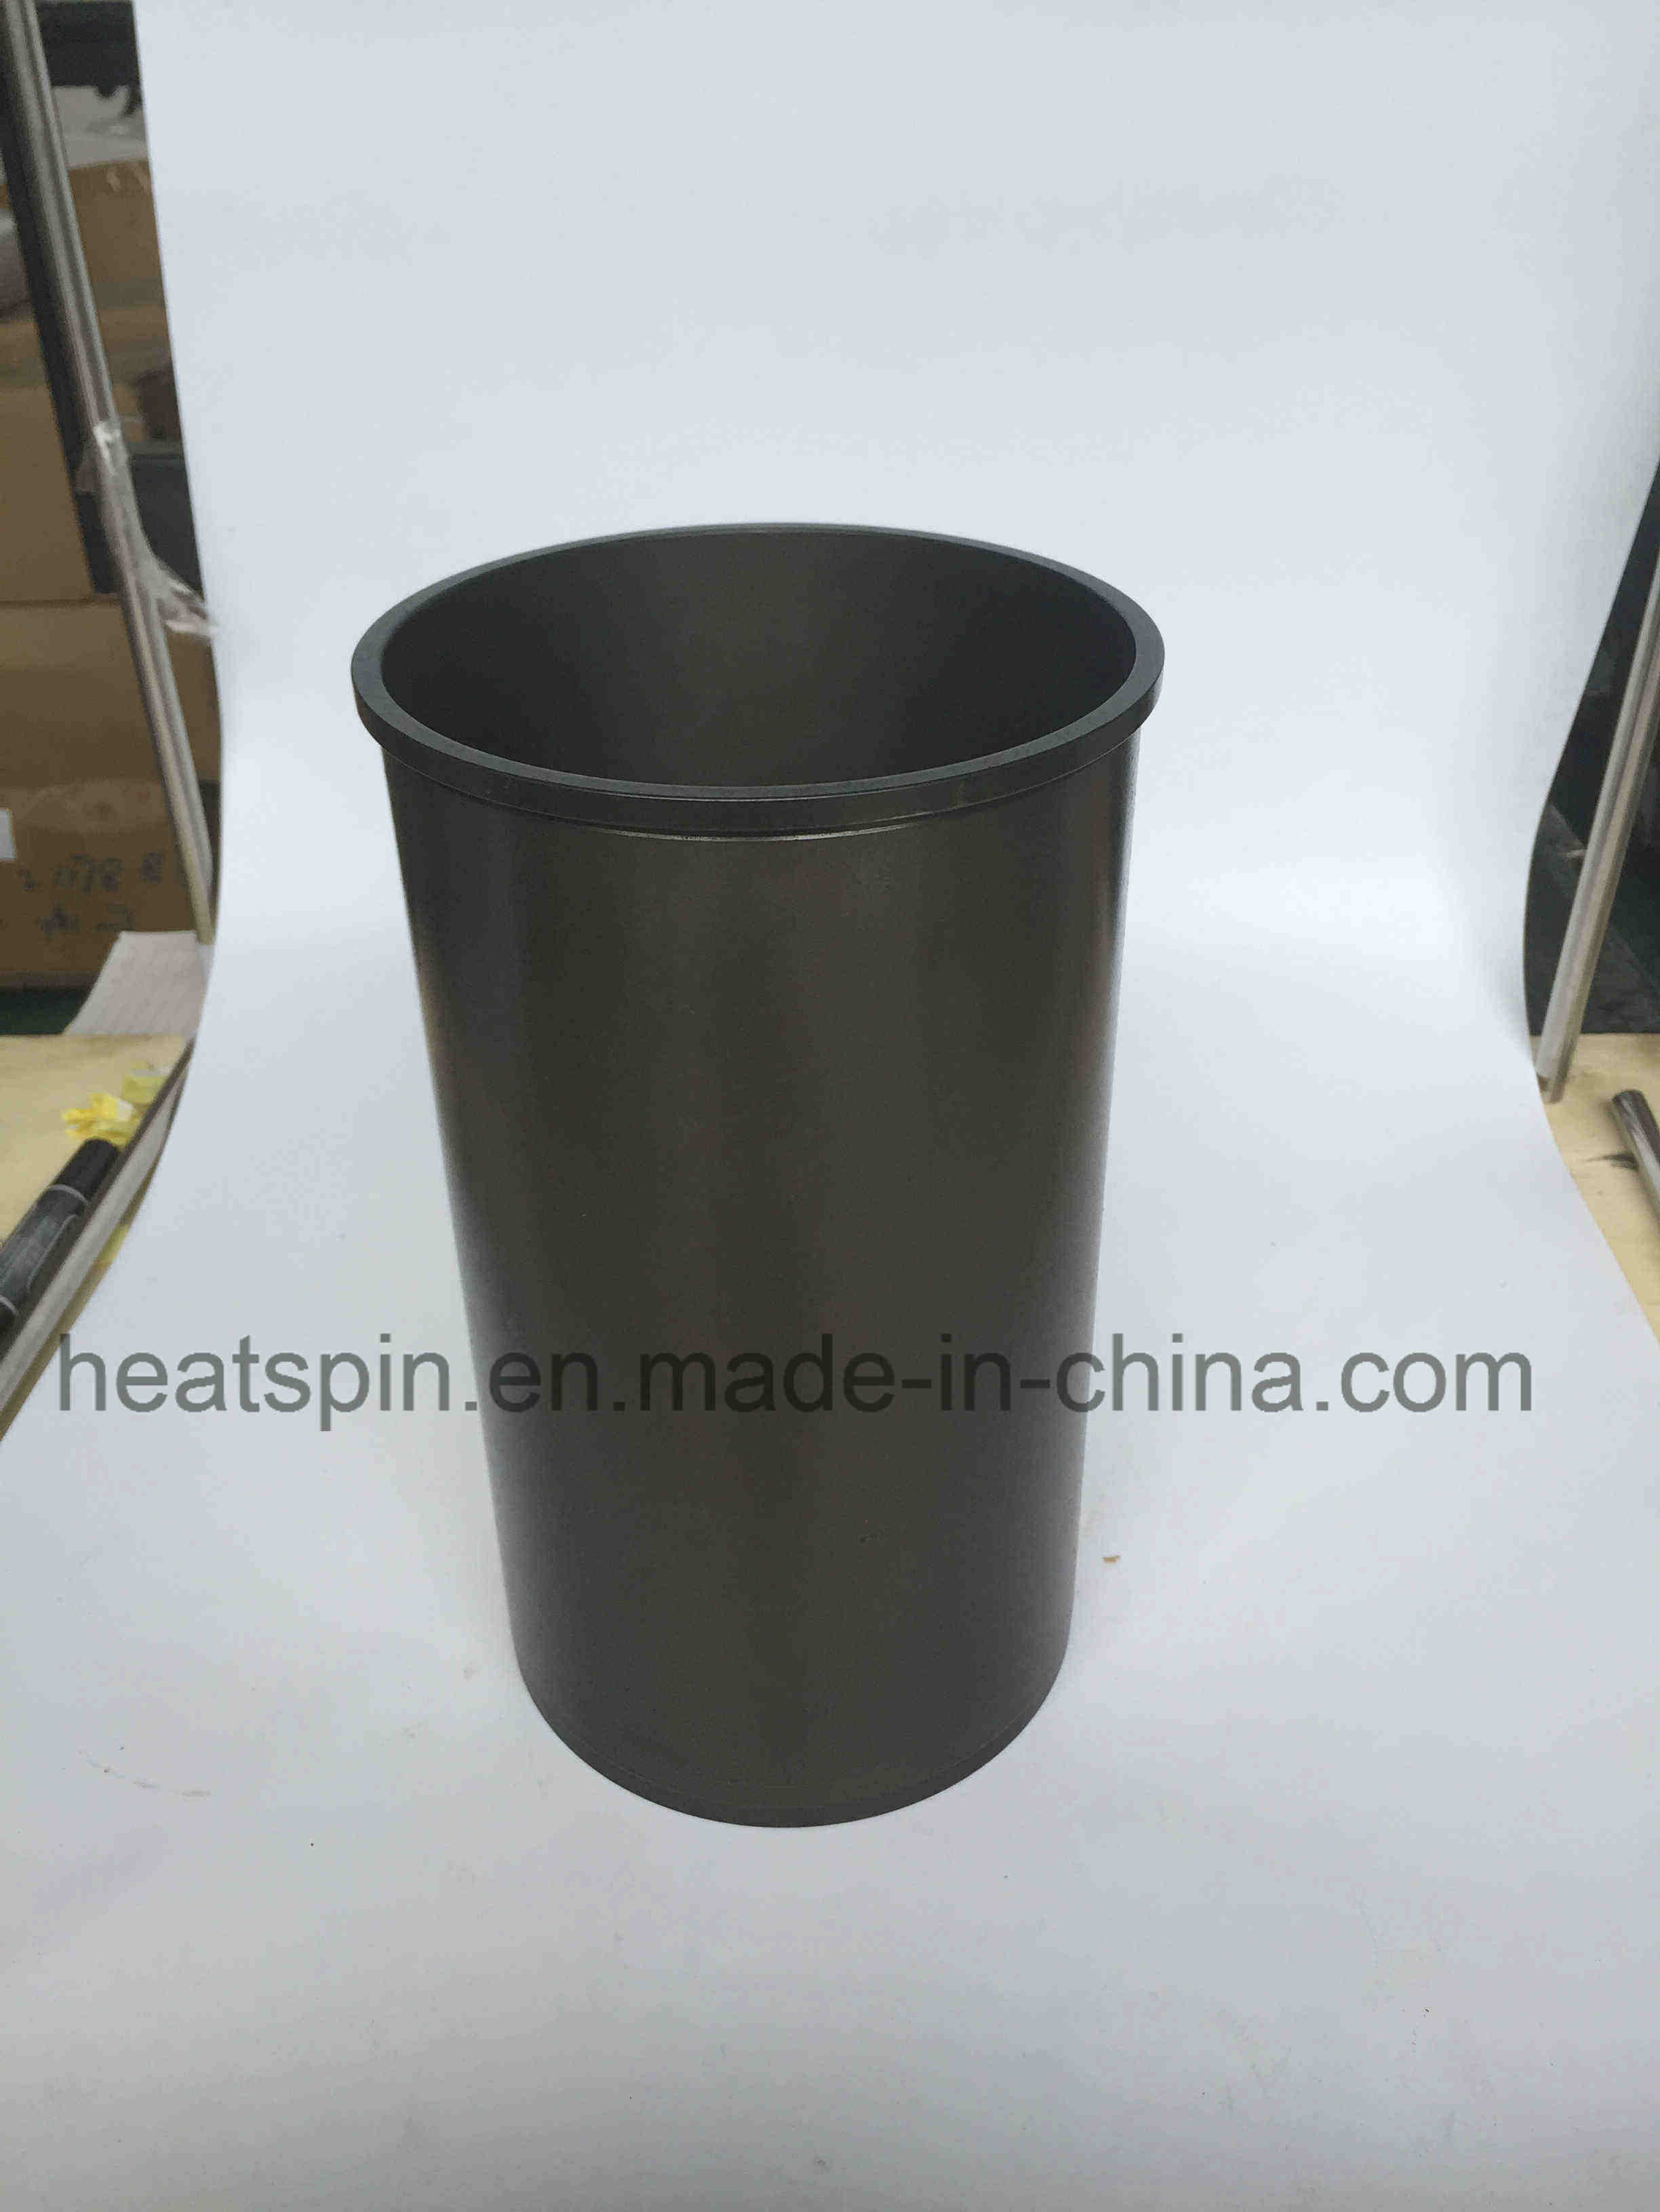 Isuzu 6wg1 Piston Sleeve Made by Heatspin with One Year Warranty pictures & photos